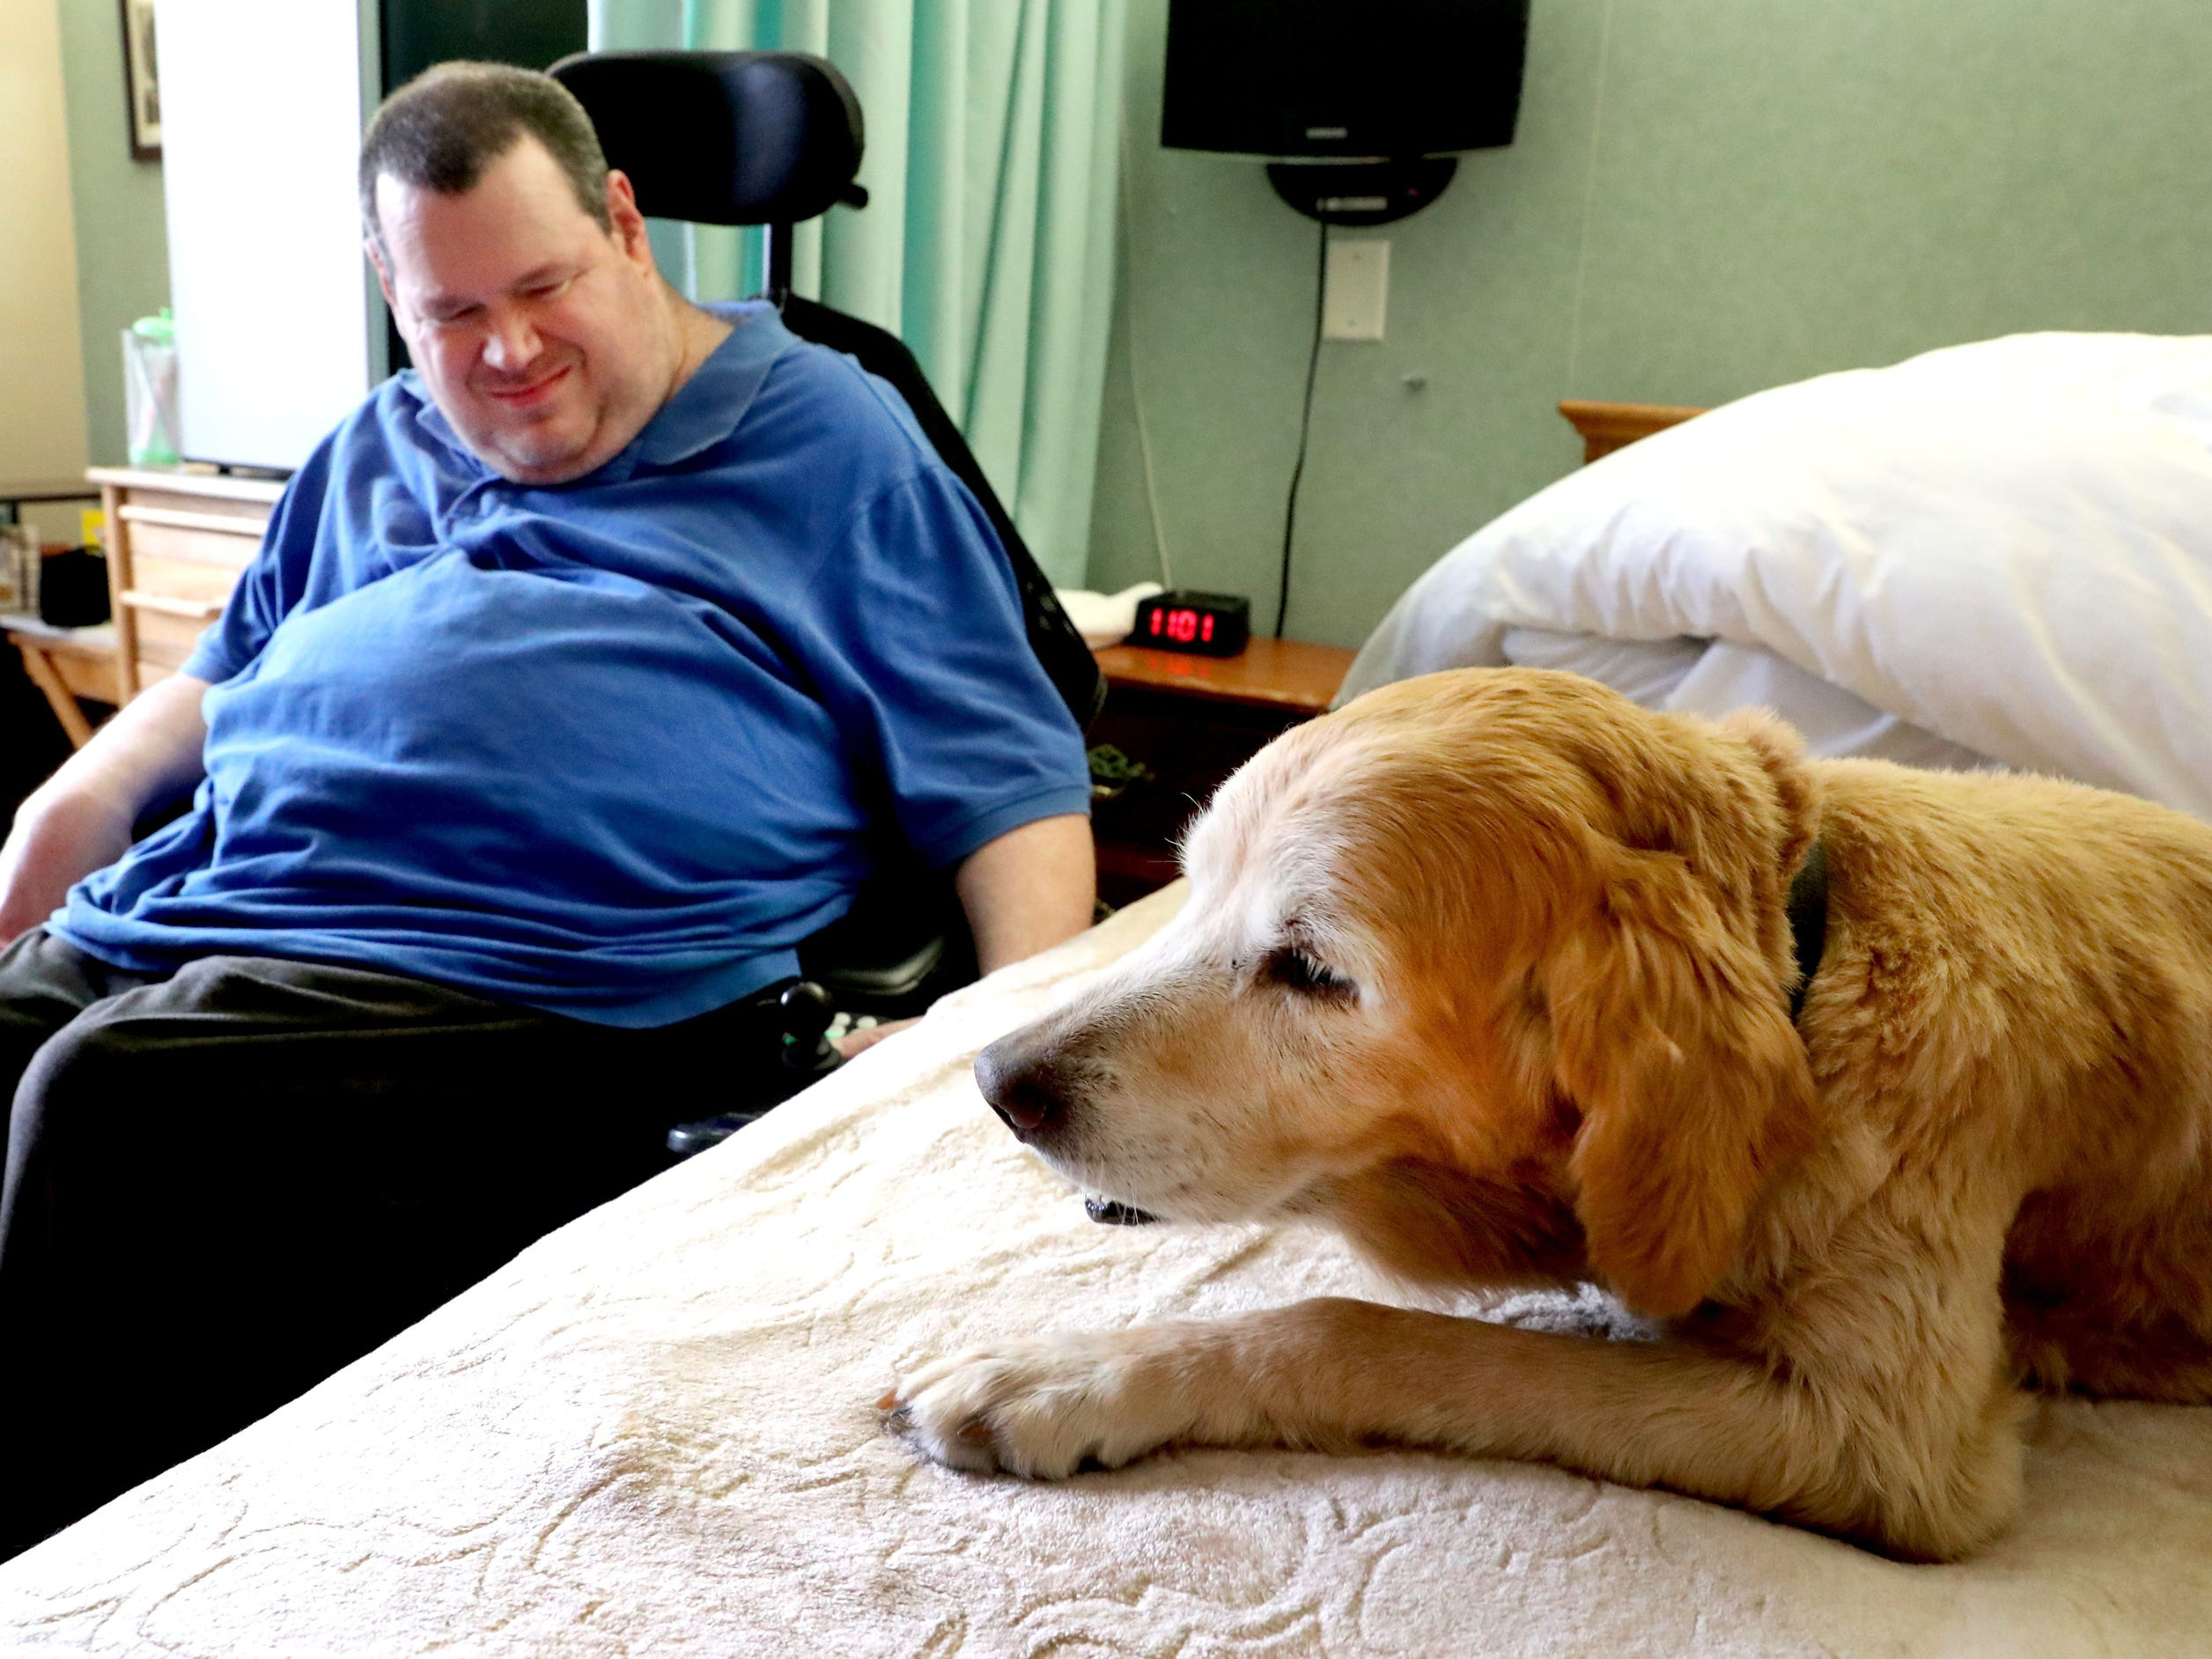 JT Potts a resident at Community Care of Rutherford County hangs out with Goldie the center?s dog in his room, on Thursday, Oct. 25, 2018. Goldie has recently been diagnosed with kidney failure and Potts wrote a letter in Goldie?s voice about her time at Community Cares.